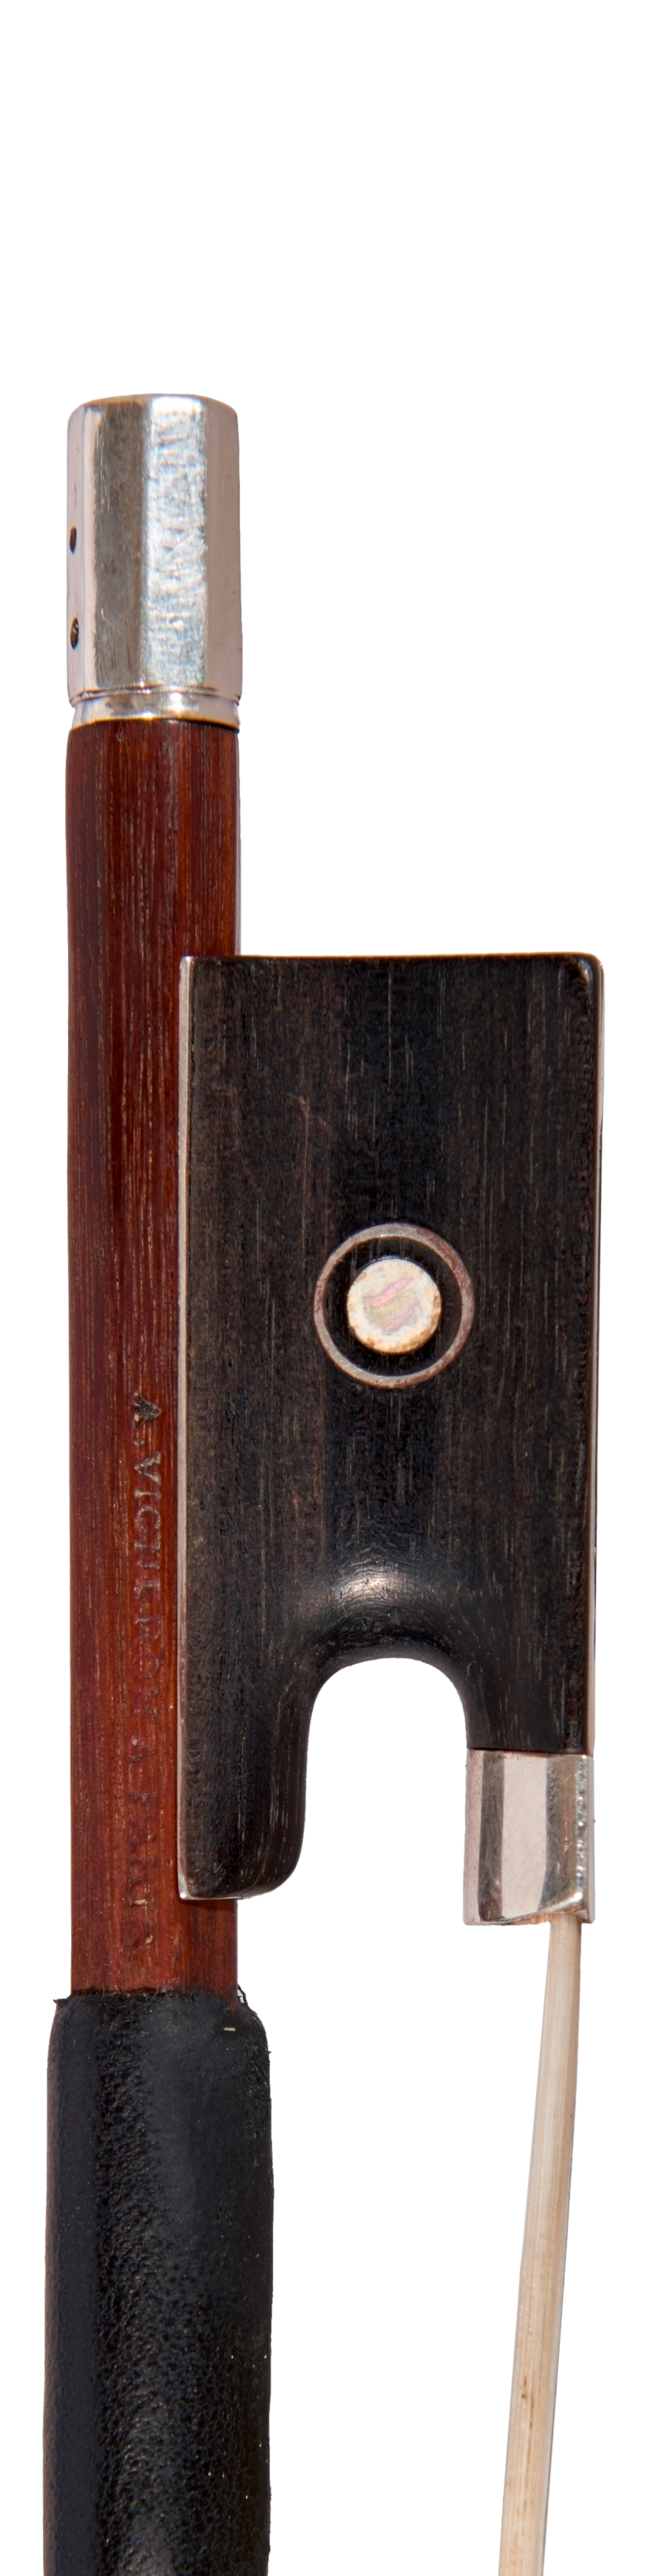 Frog of a violin bow by JA Vigneron, circa 1900. This bow is a lovely example of the maker's mature style and is undeniably a player's bow.